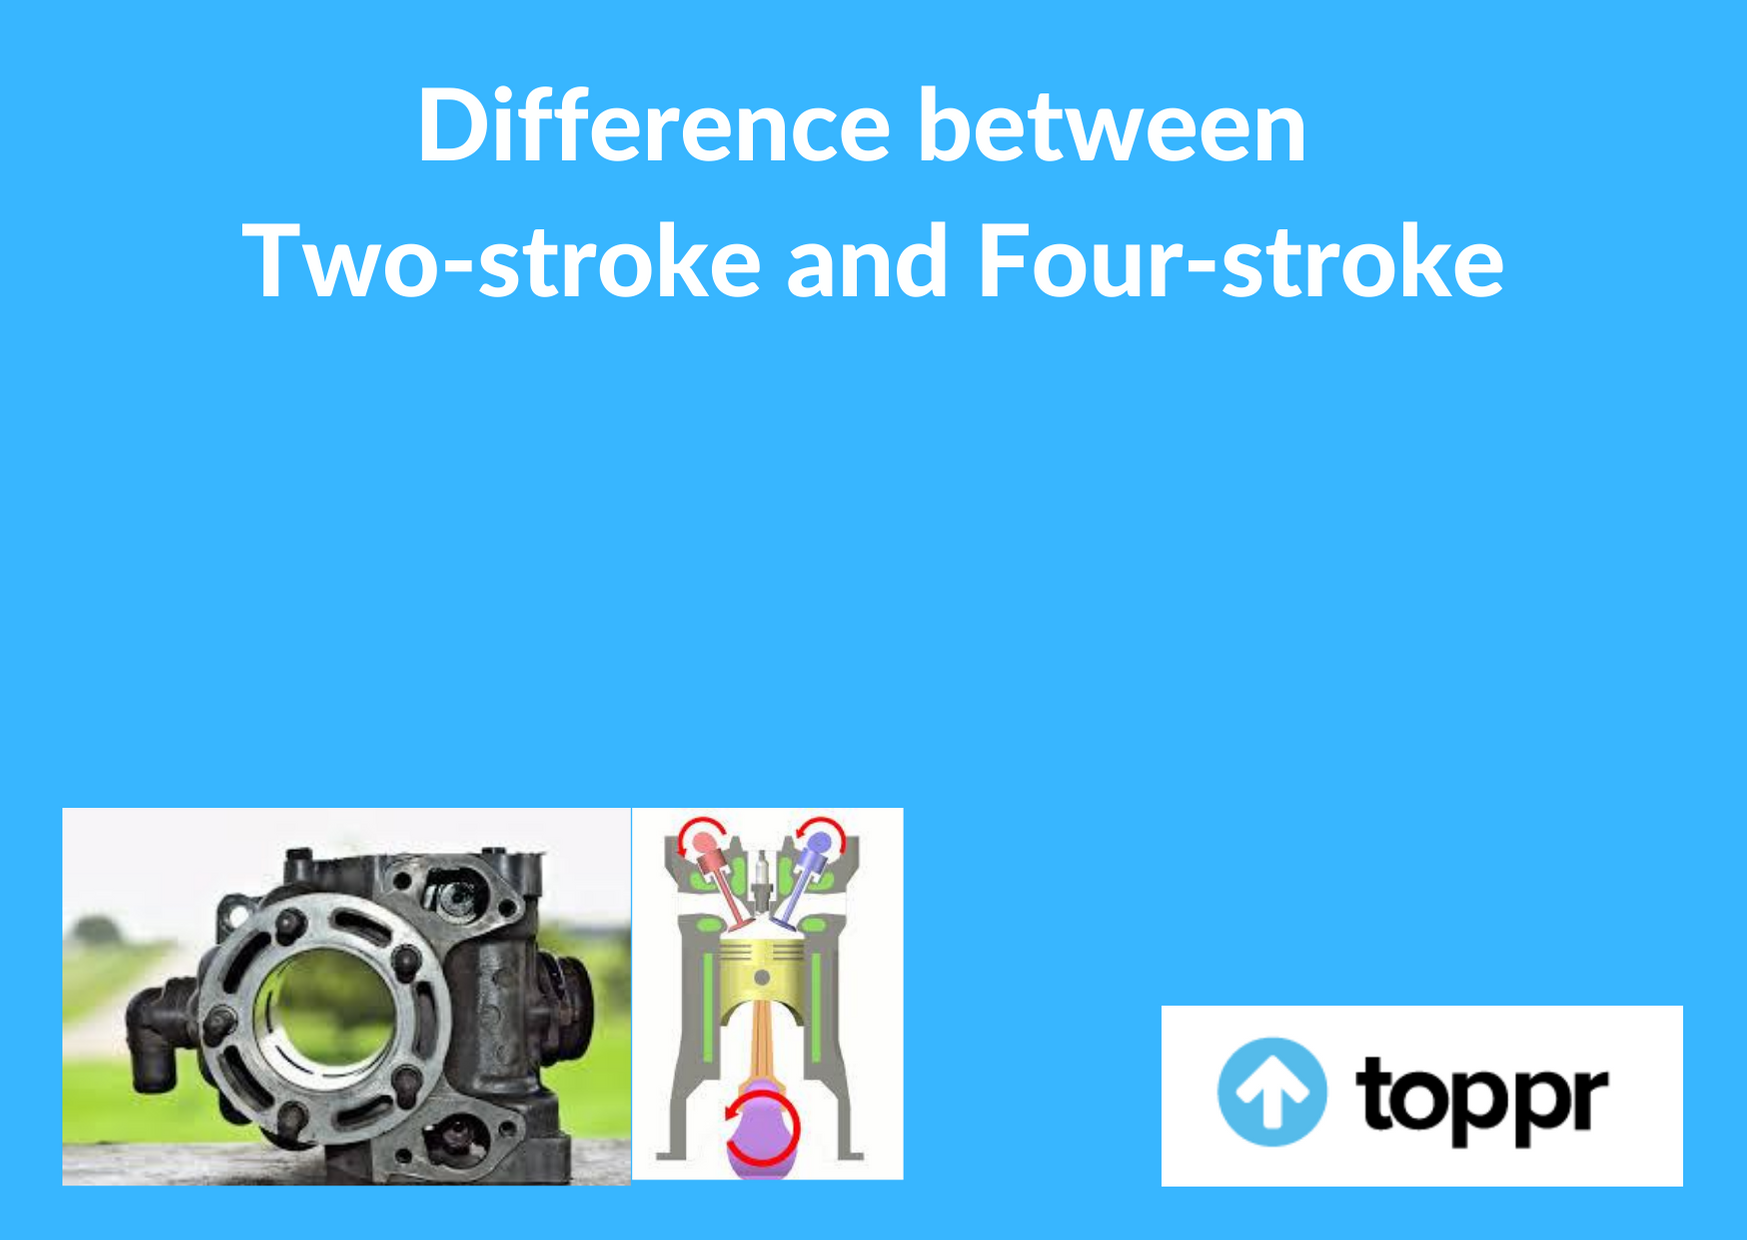 Difference between two-stroke and four-stroke